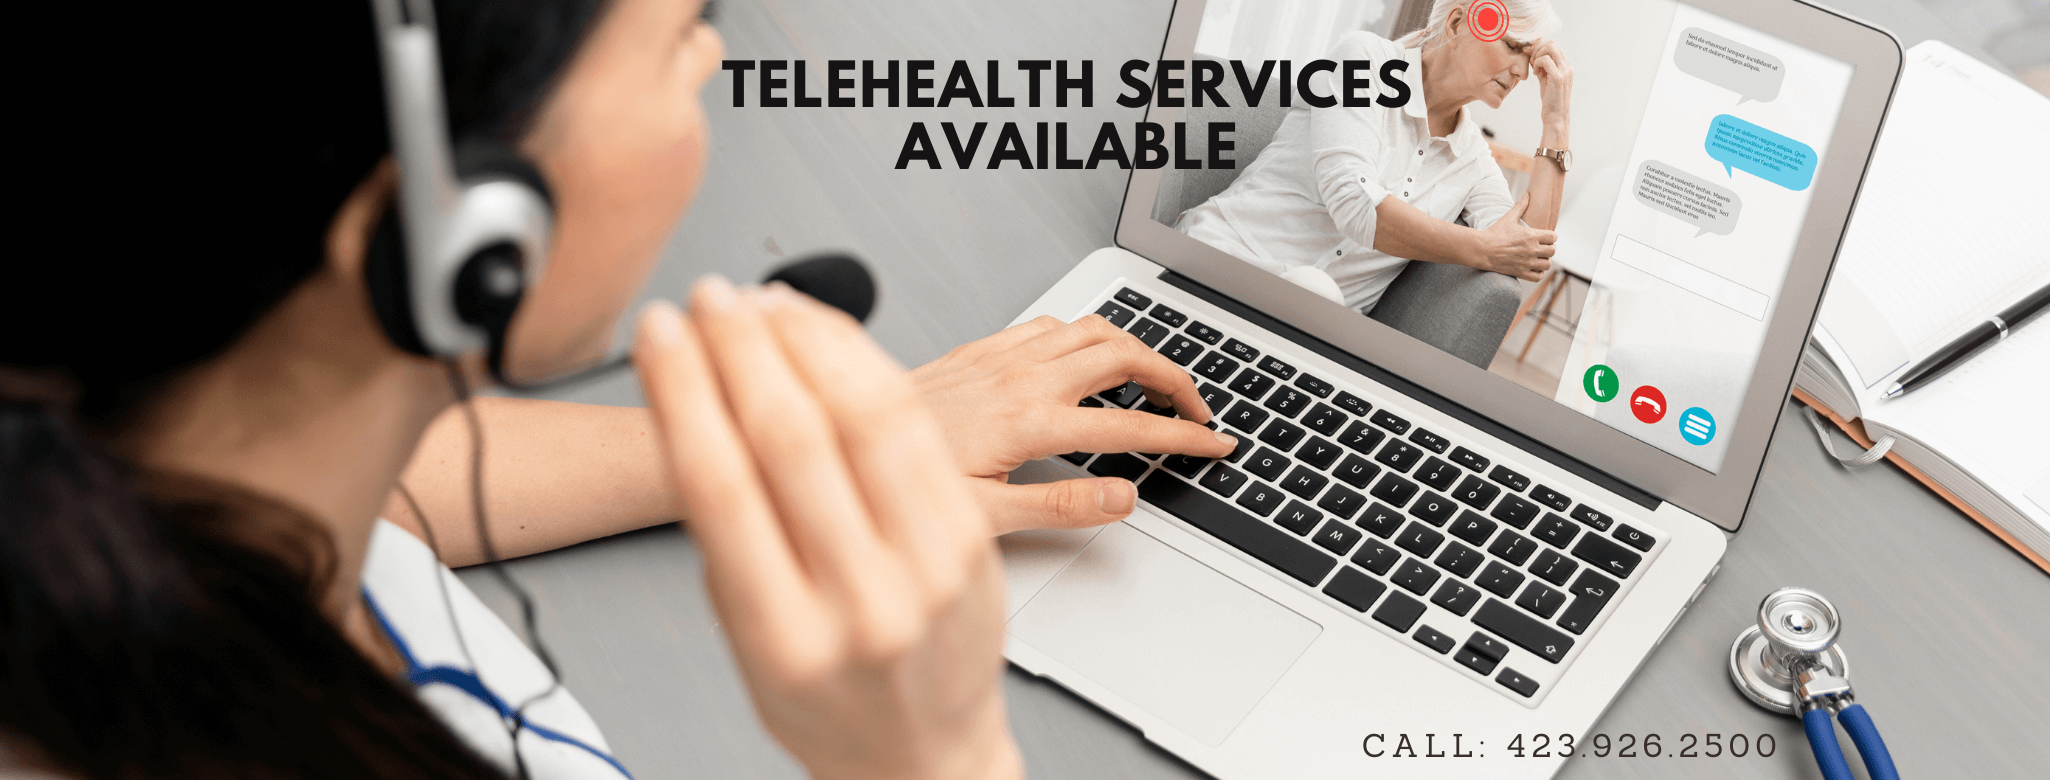 Telehealth services are available for you and your family wherever you are. Make an appointment today and get the health care you need.